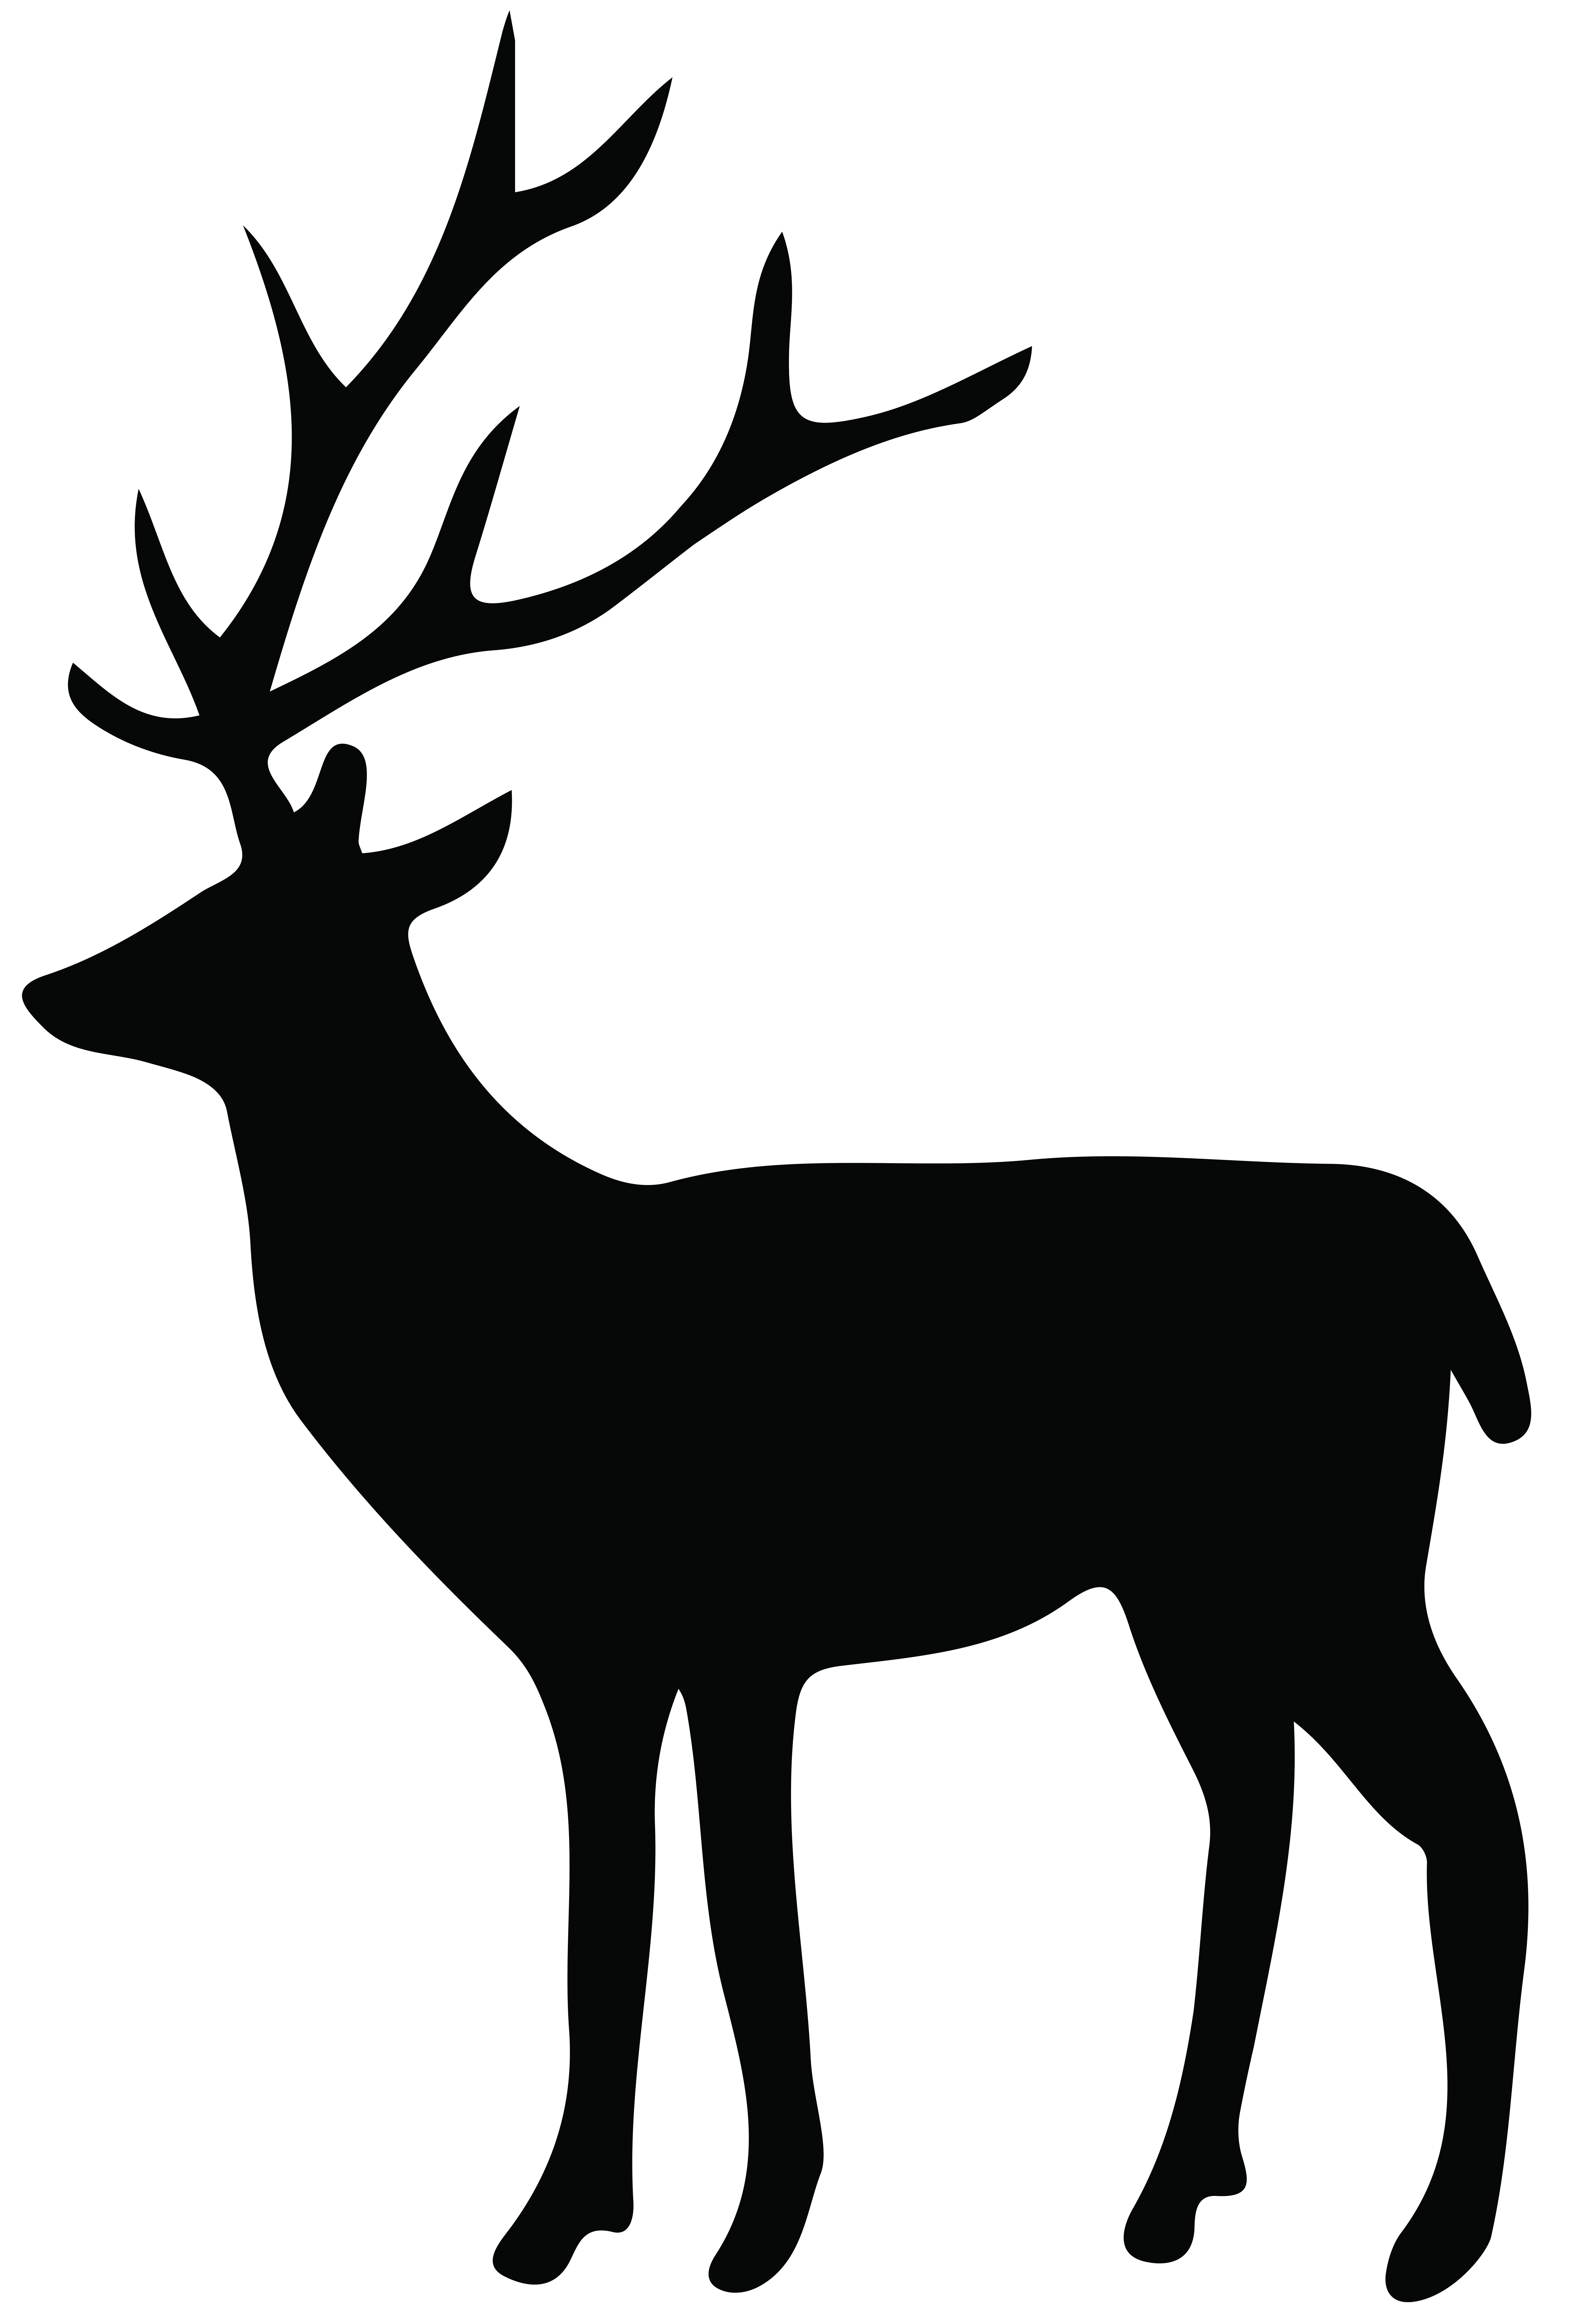 Fawn Silhouette Png - Silhouette Deer Png